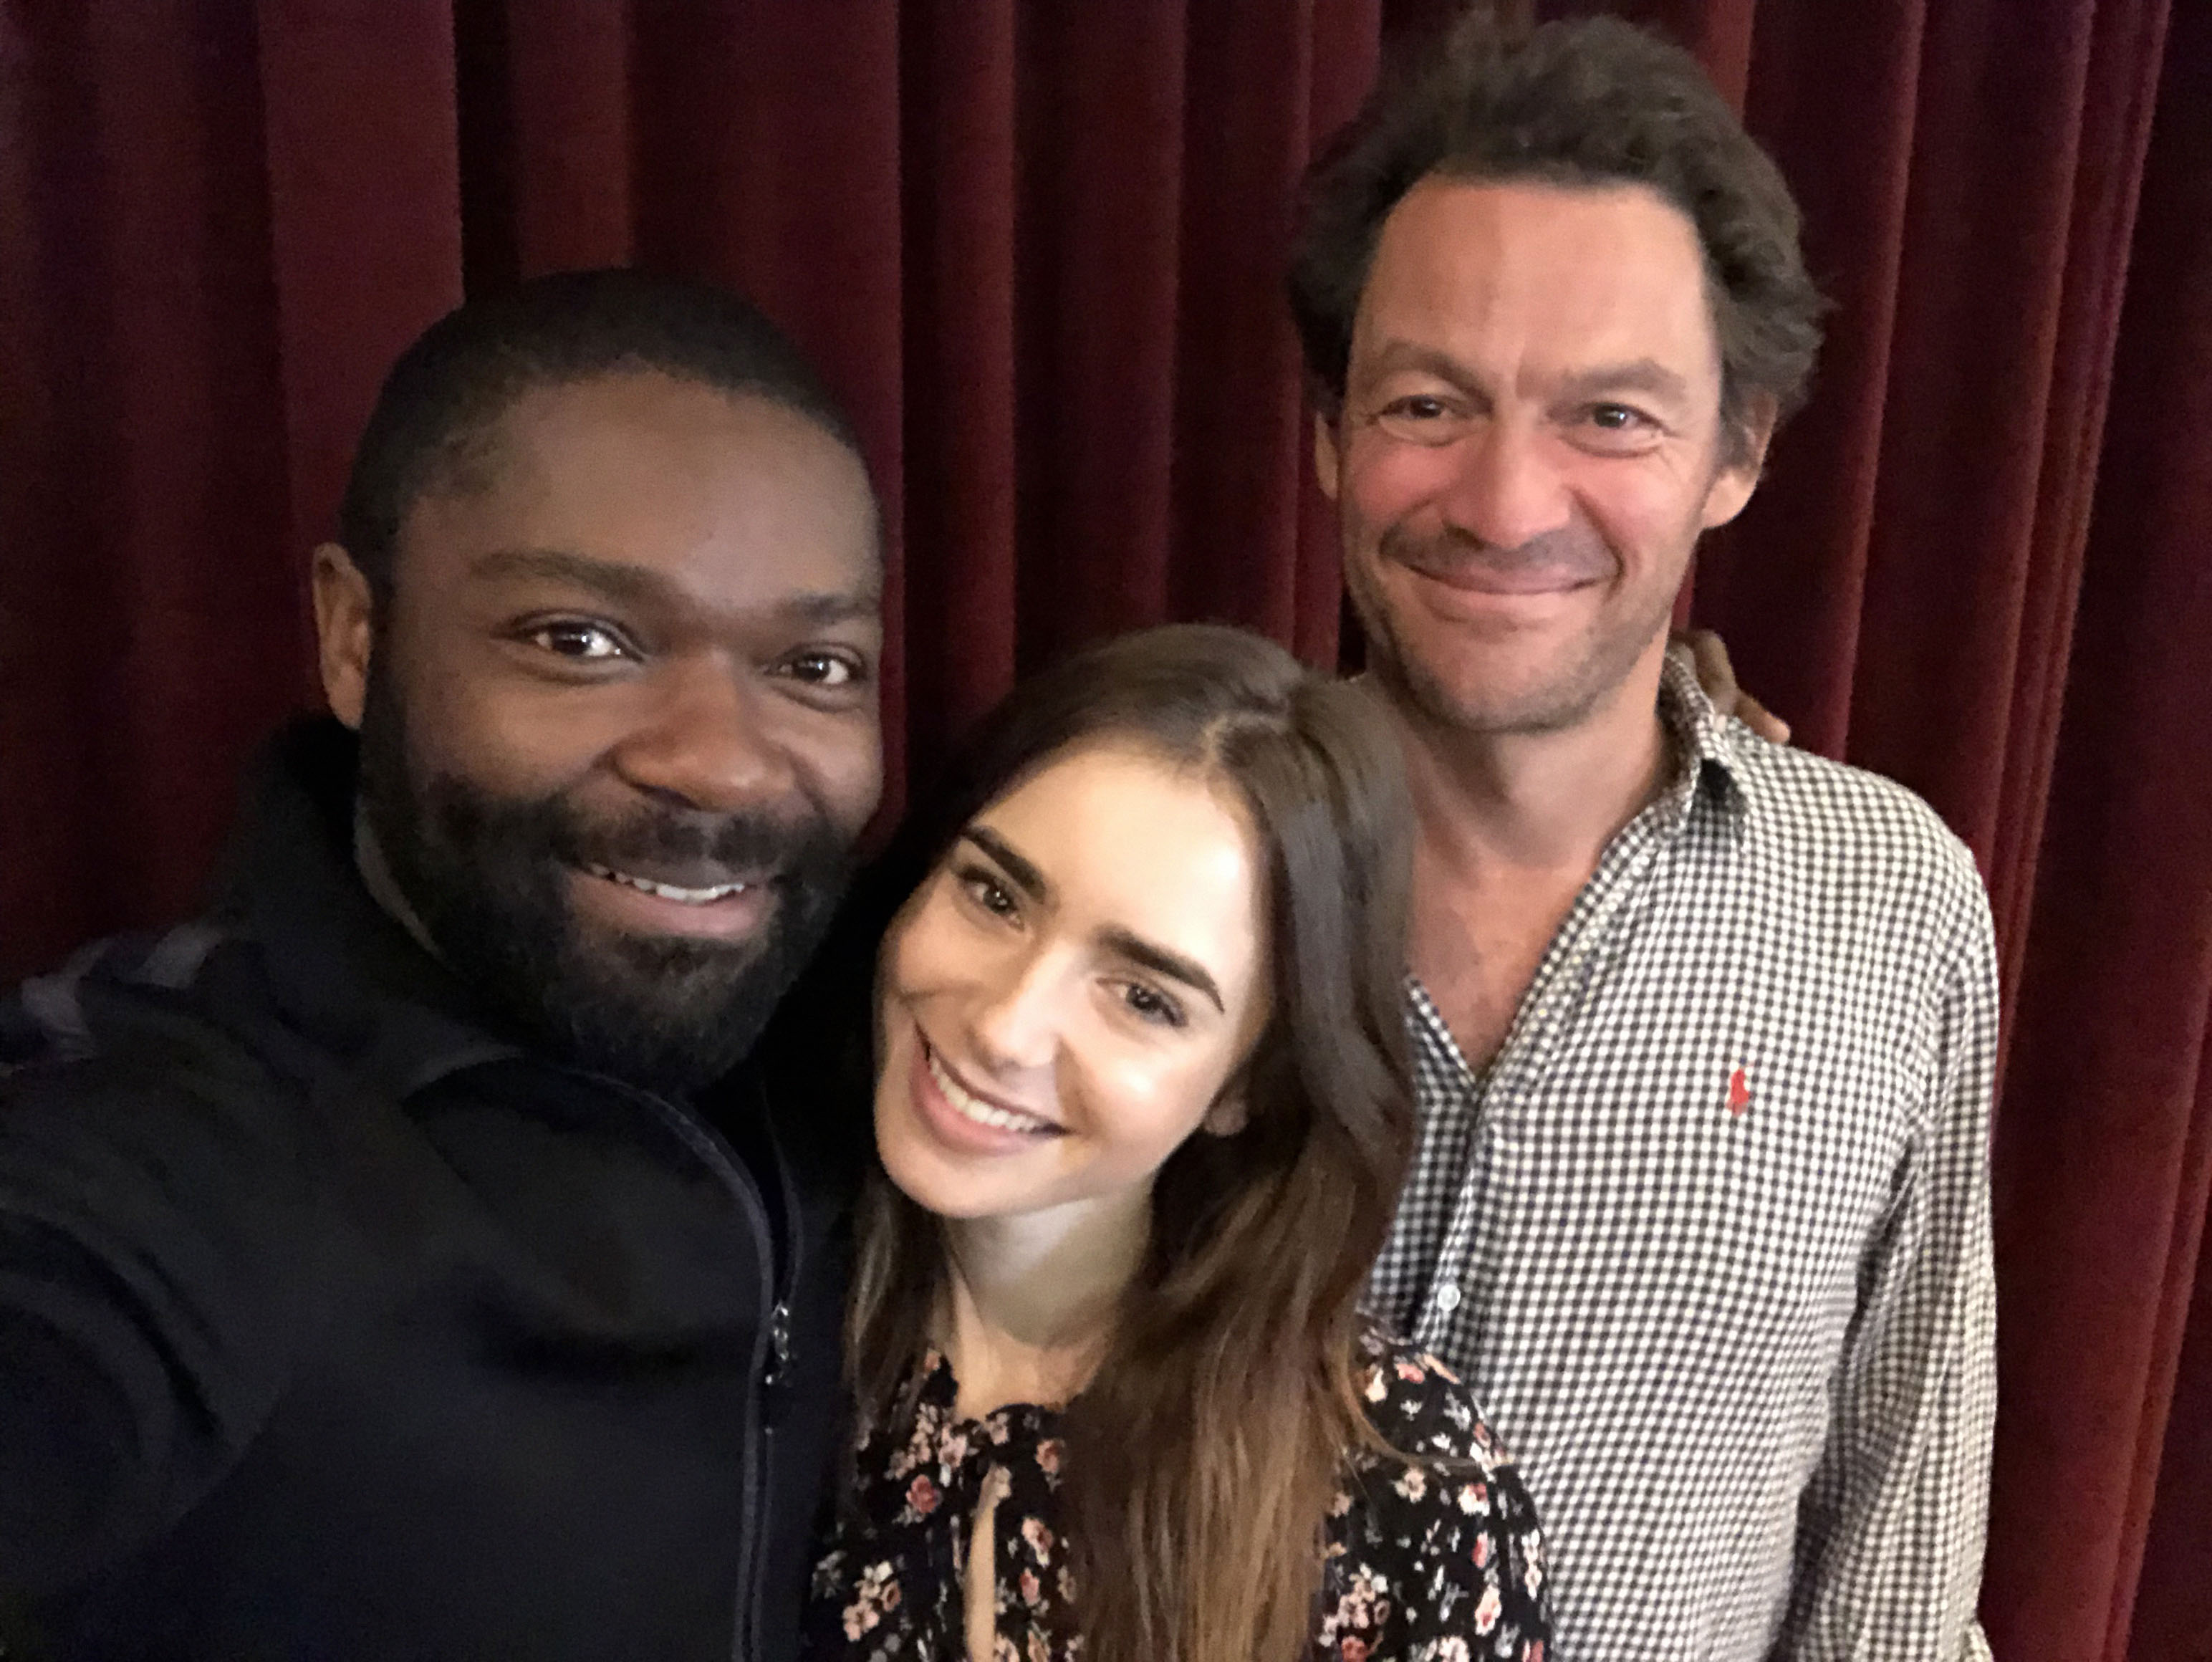 Dominic West, David Oyelowo and Lily Collins to lead new BBC adaptation of Les Miserables